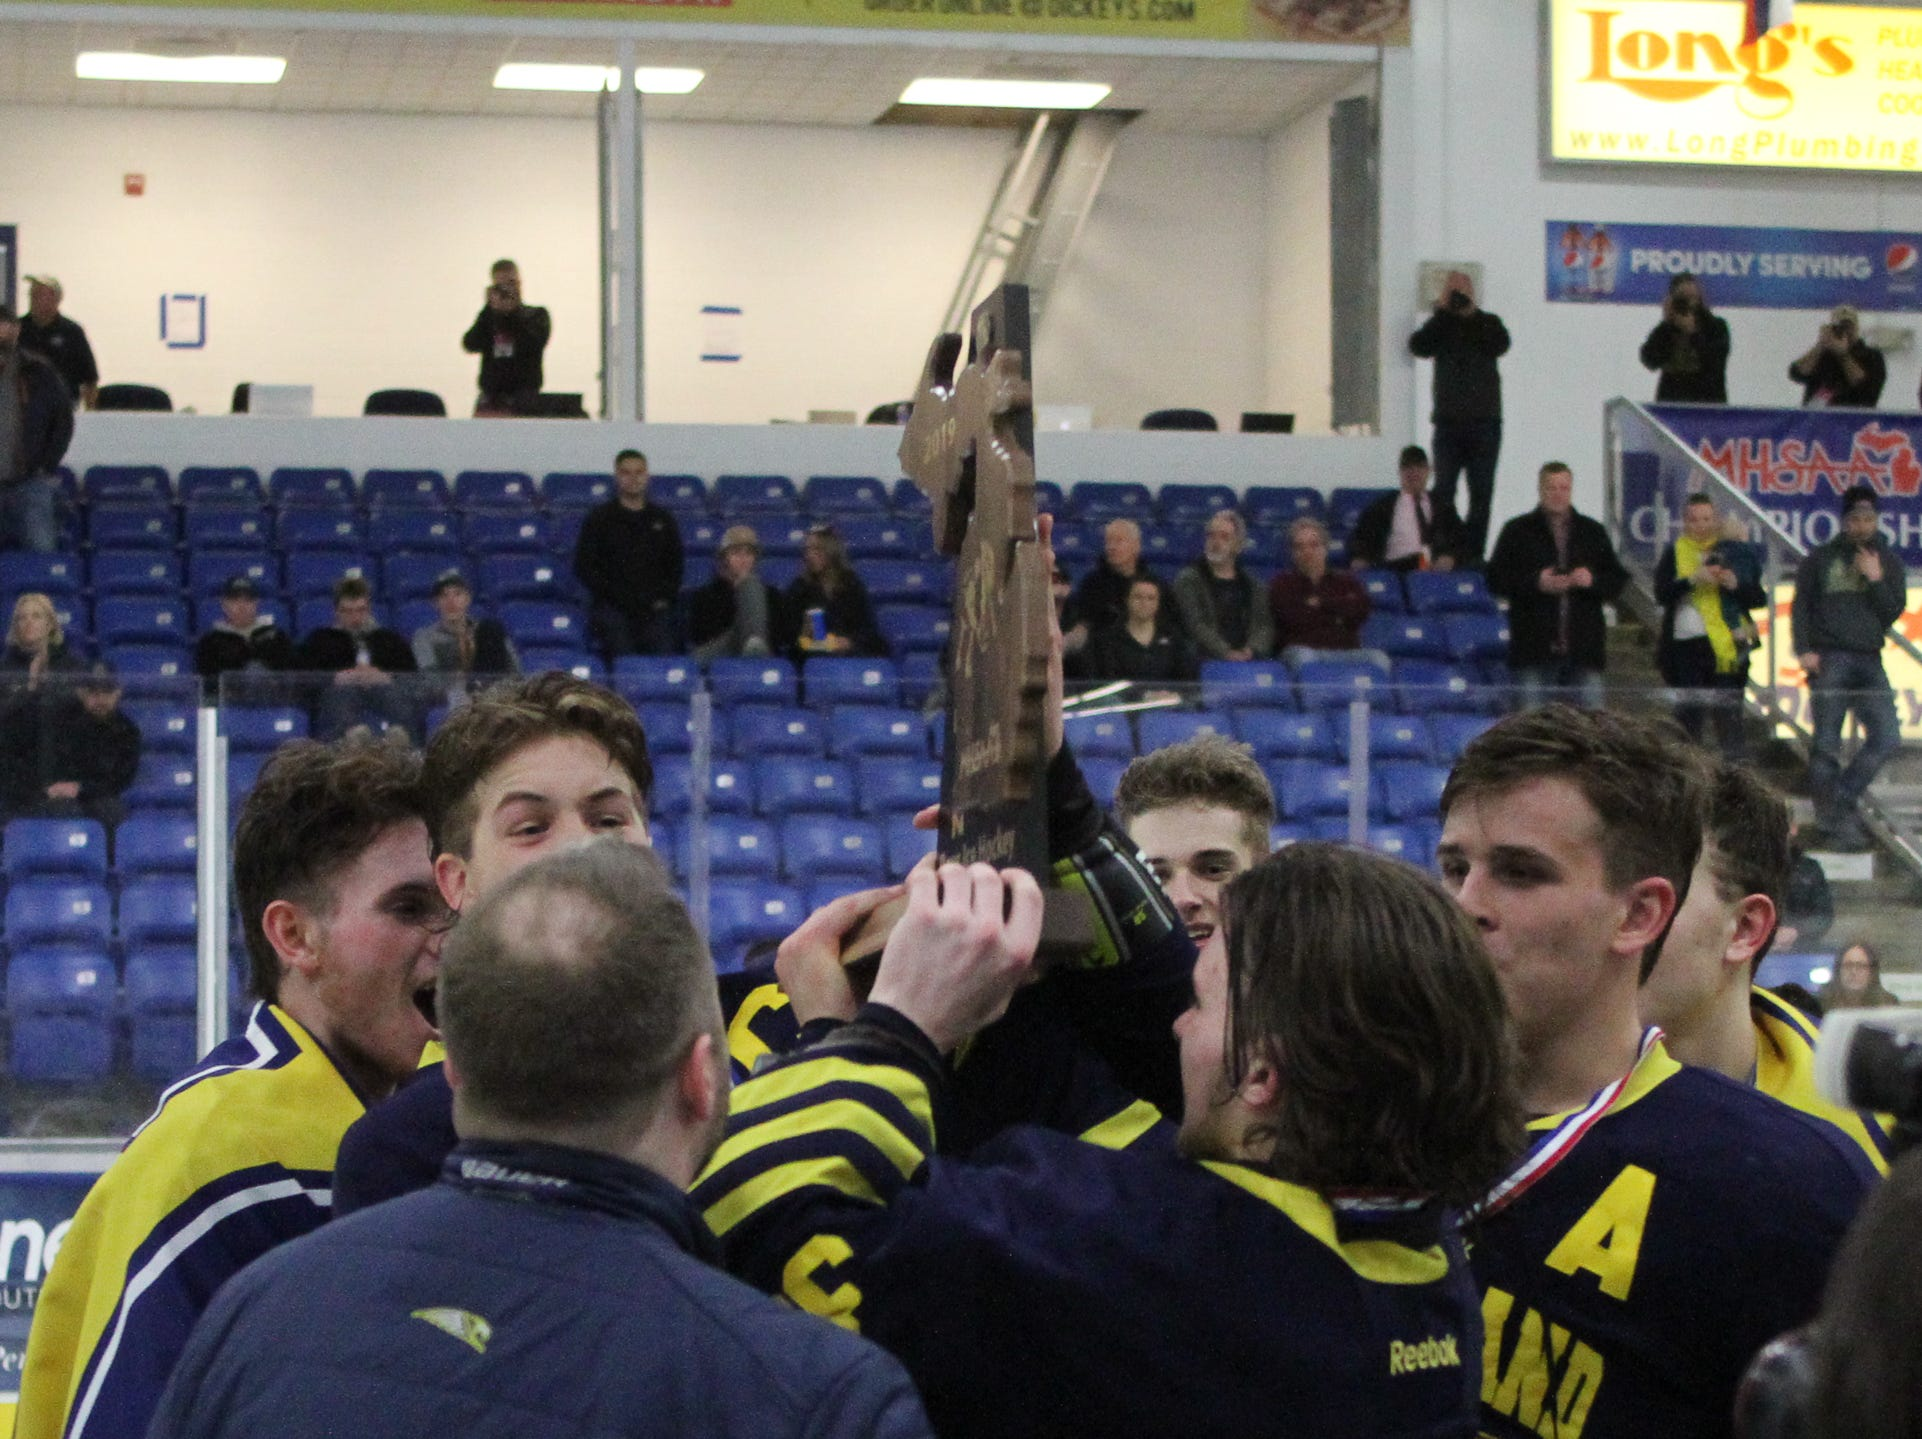 Hartland hoists the trophy after a 4-0 victory over Trenton in the state Division 2 championship hockey game on Saturday, March 9, 2019 at USA Hockey Arena.